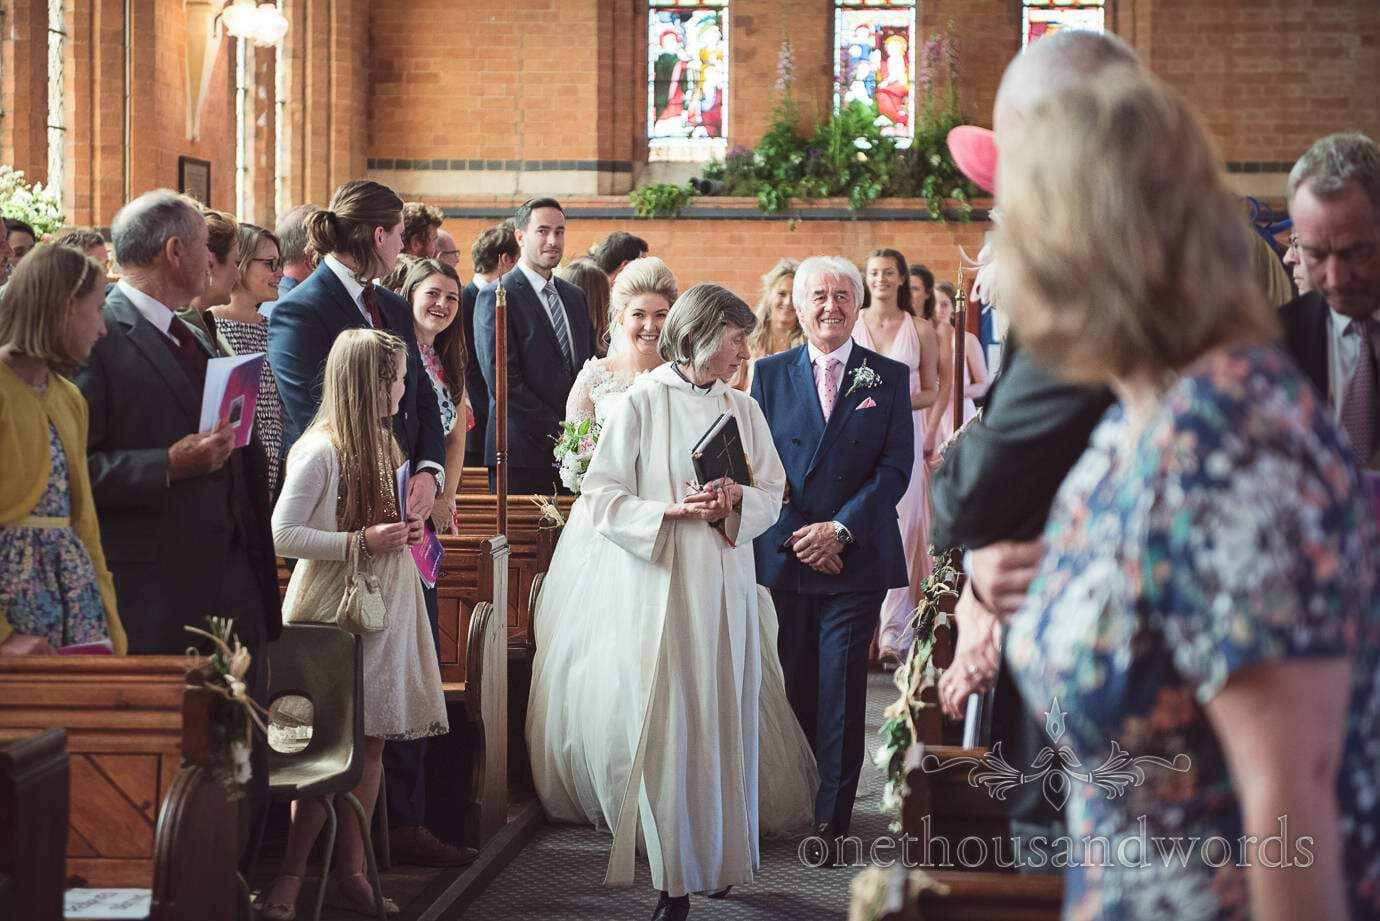 Vicar leads father of the bride and bride up aisle at church wedding in Leicestershire